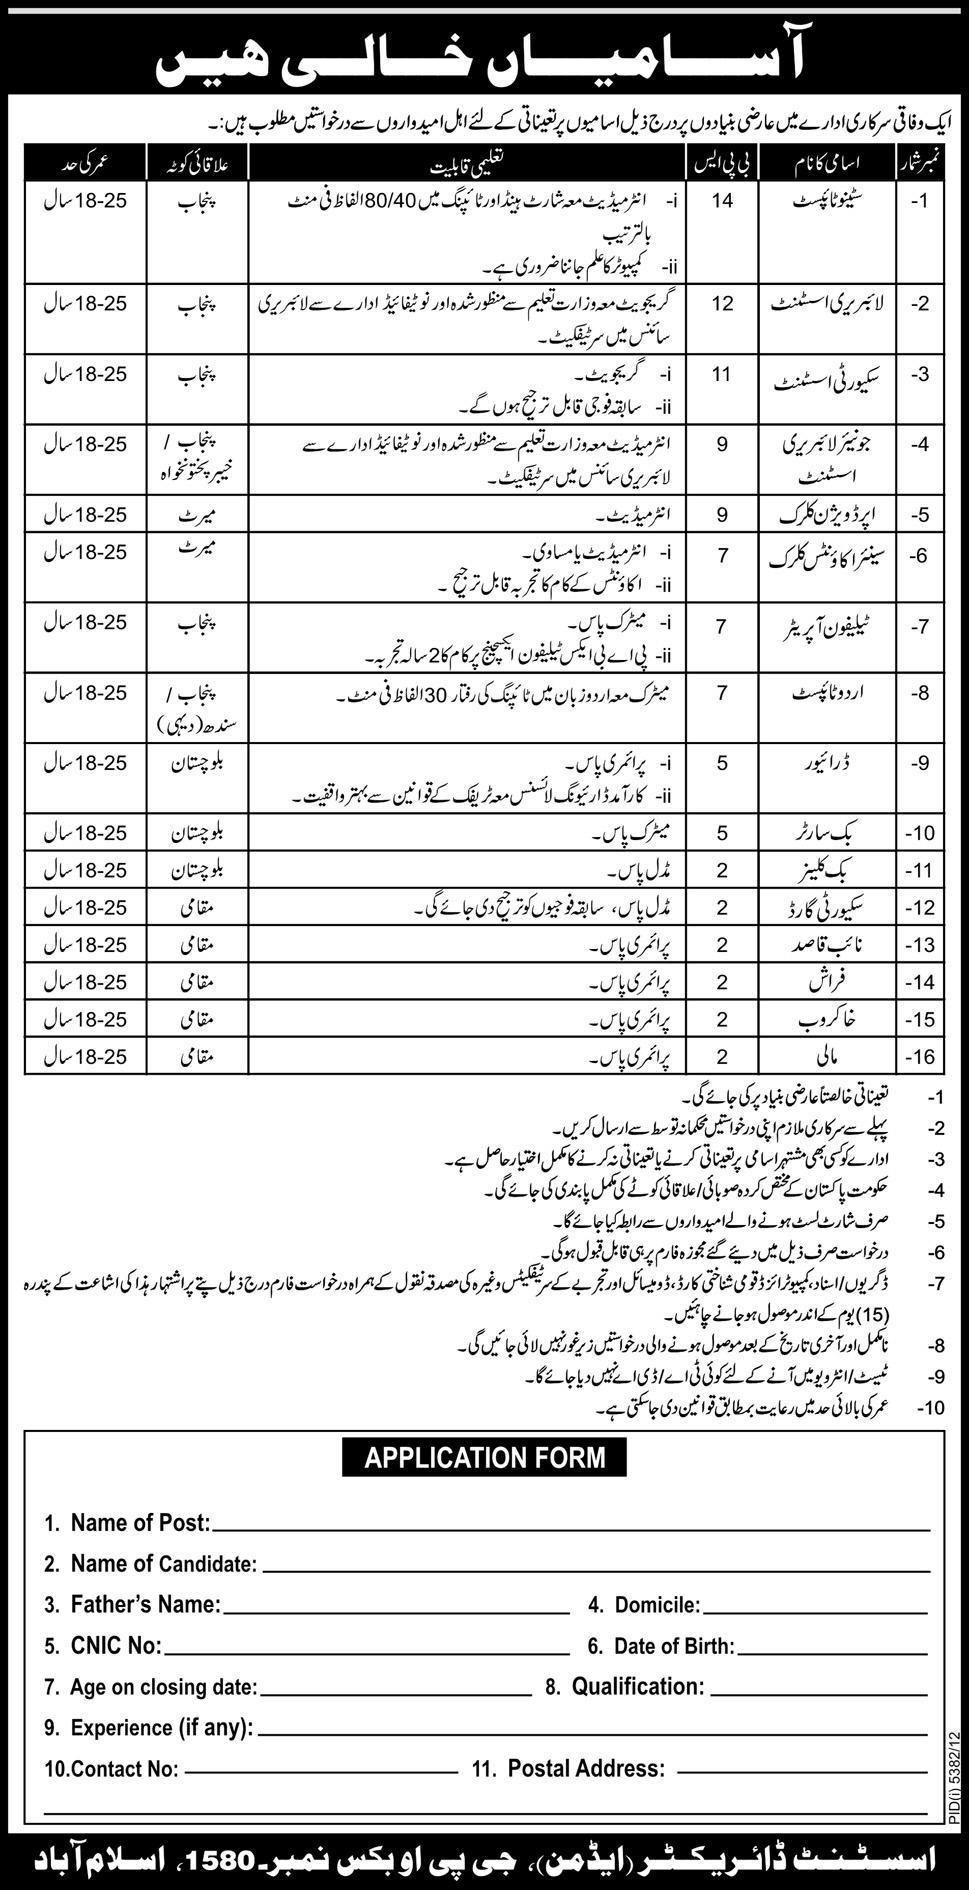 Federal-Government-Islamabad-Jobs-in-Newspaper-stan-2013 Job Application Form Punjab University on cv form, job advertisement, job letter, agreement form, job applications online, job search, job opportunity, job payment receipt, contact form, job resume, job applications you can print, job openings, job requirements, cover letter form, job vacancy, employee benefits form,